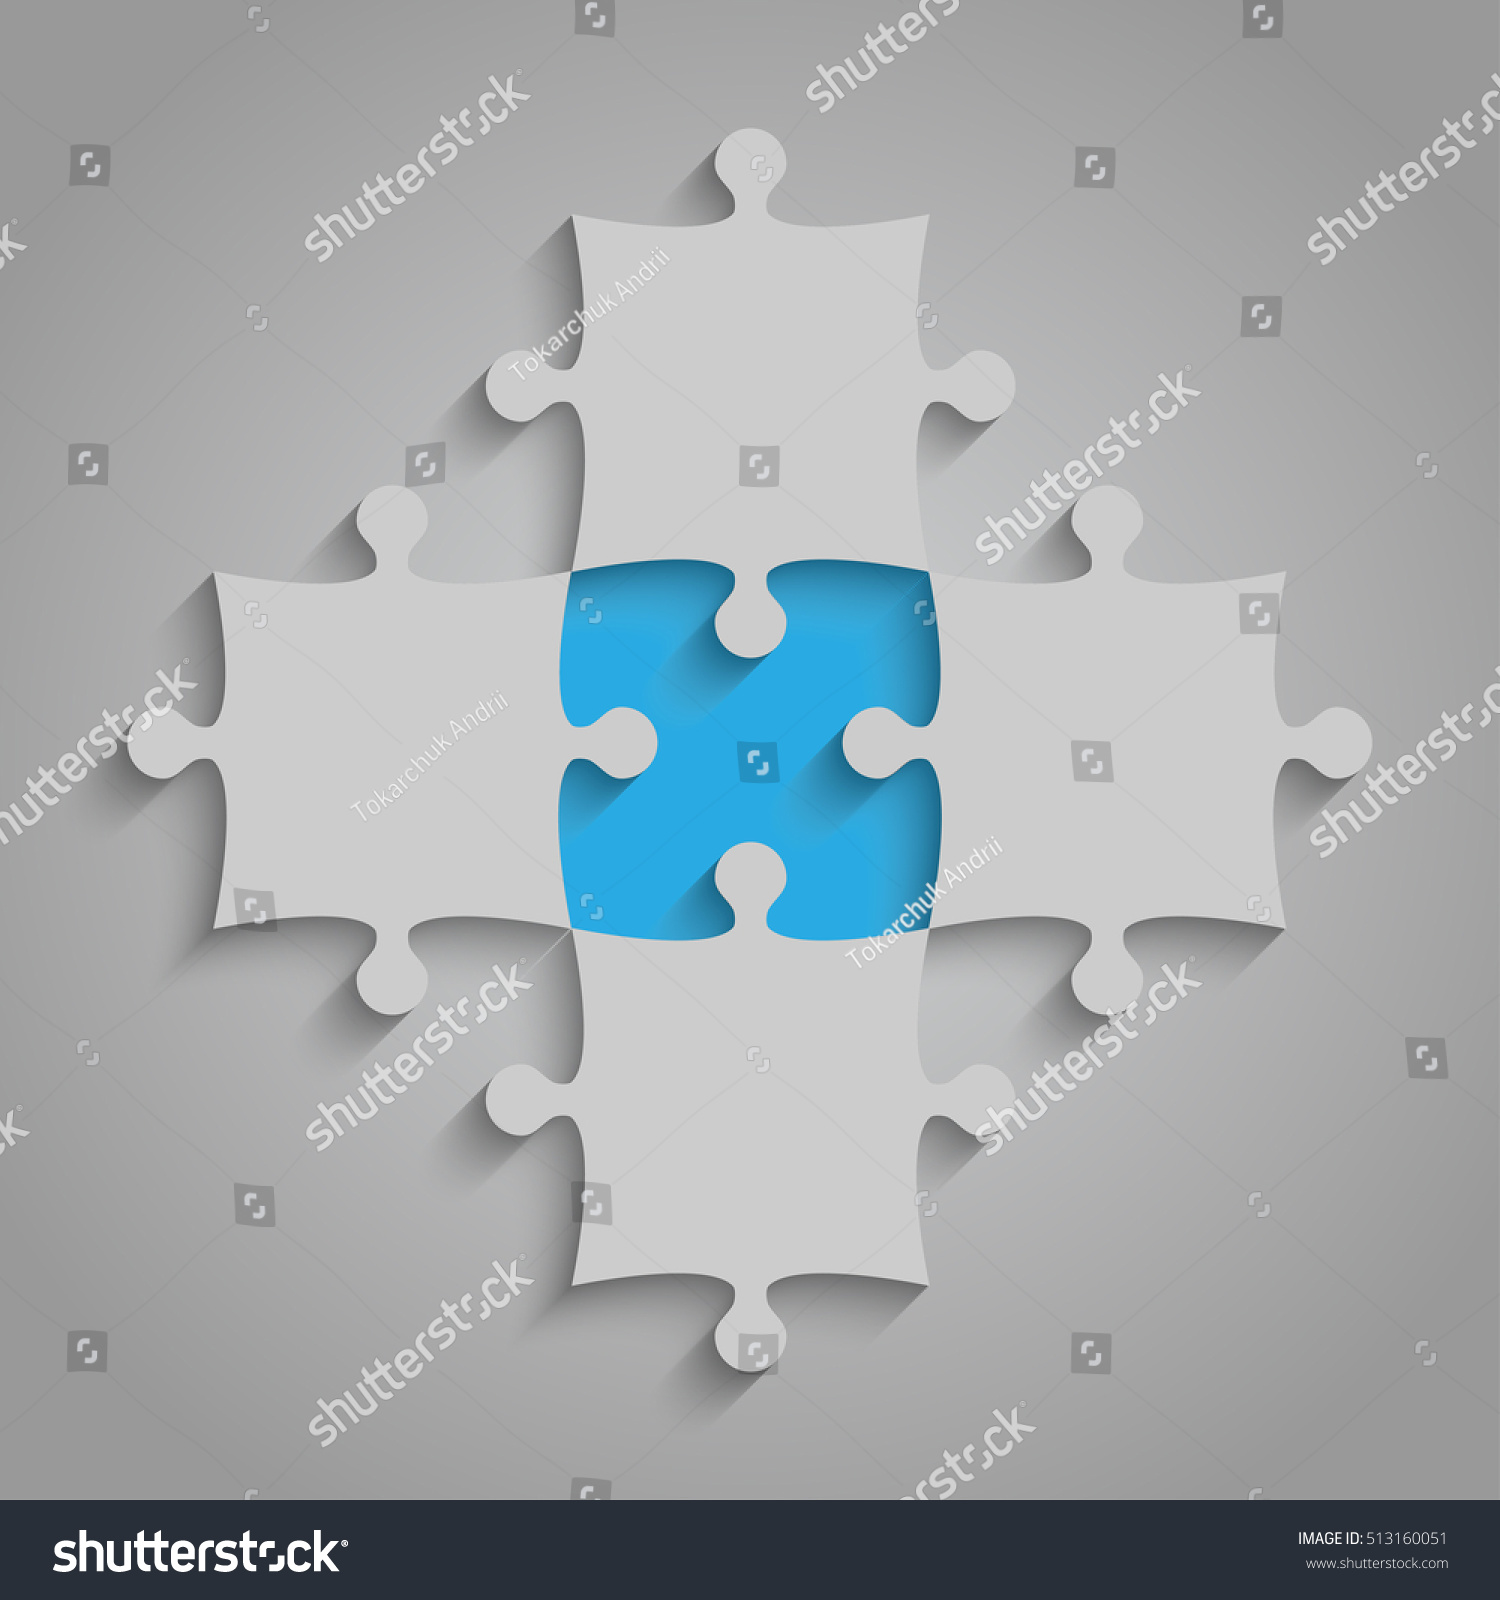 4 Grey 1 Blue Puzzles Pieces Stock Vector 513160051 - Shutterstock